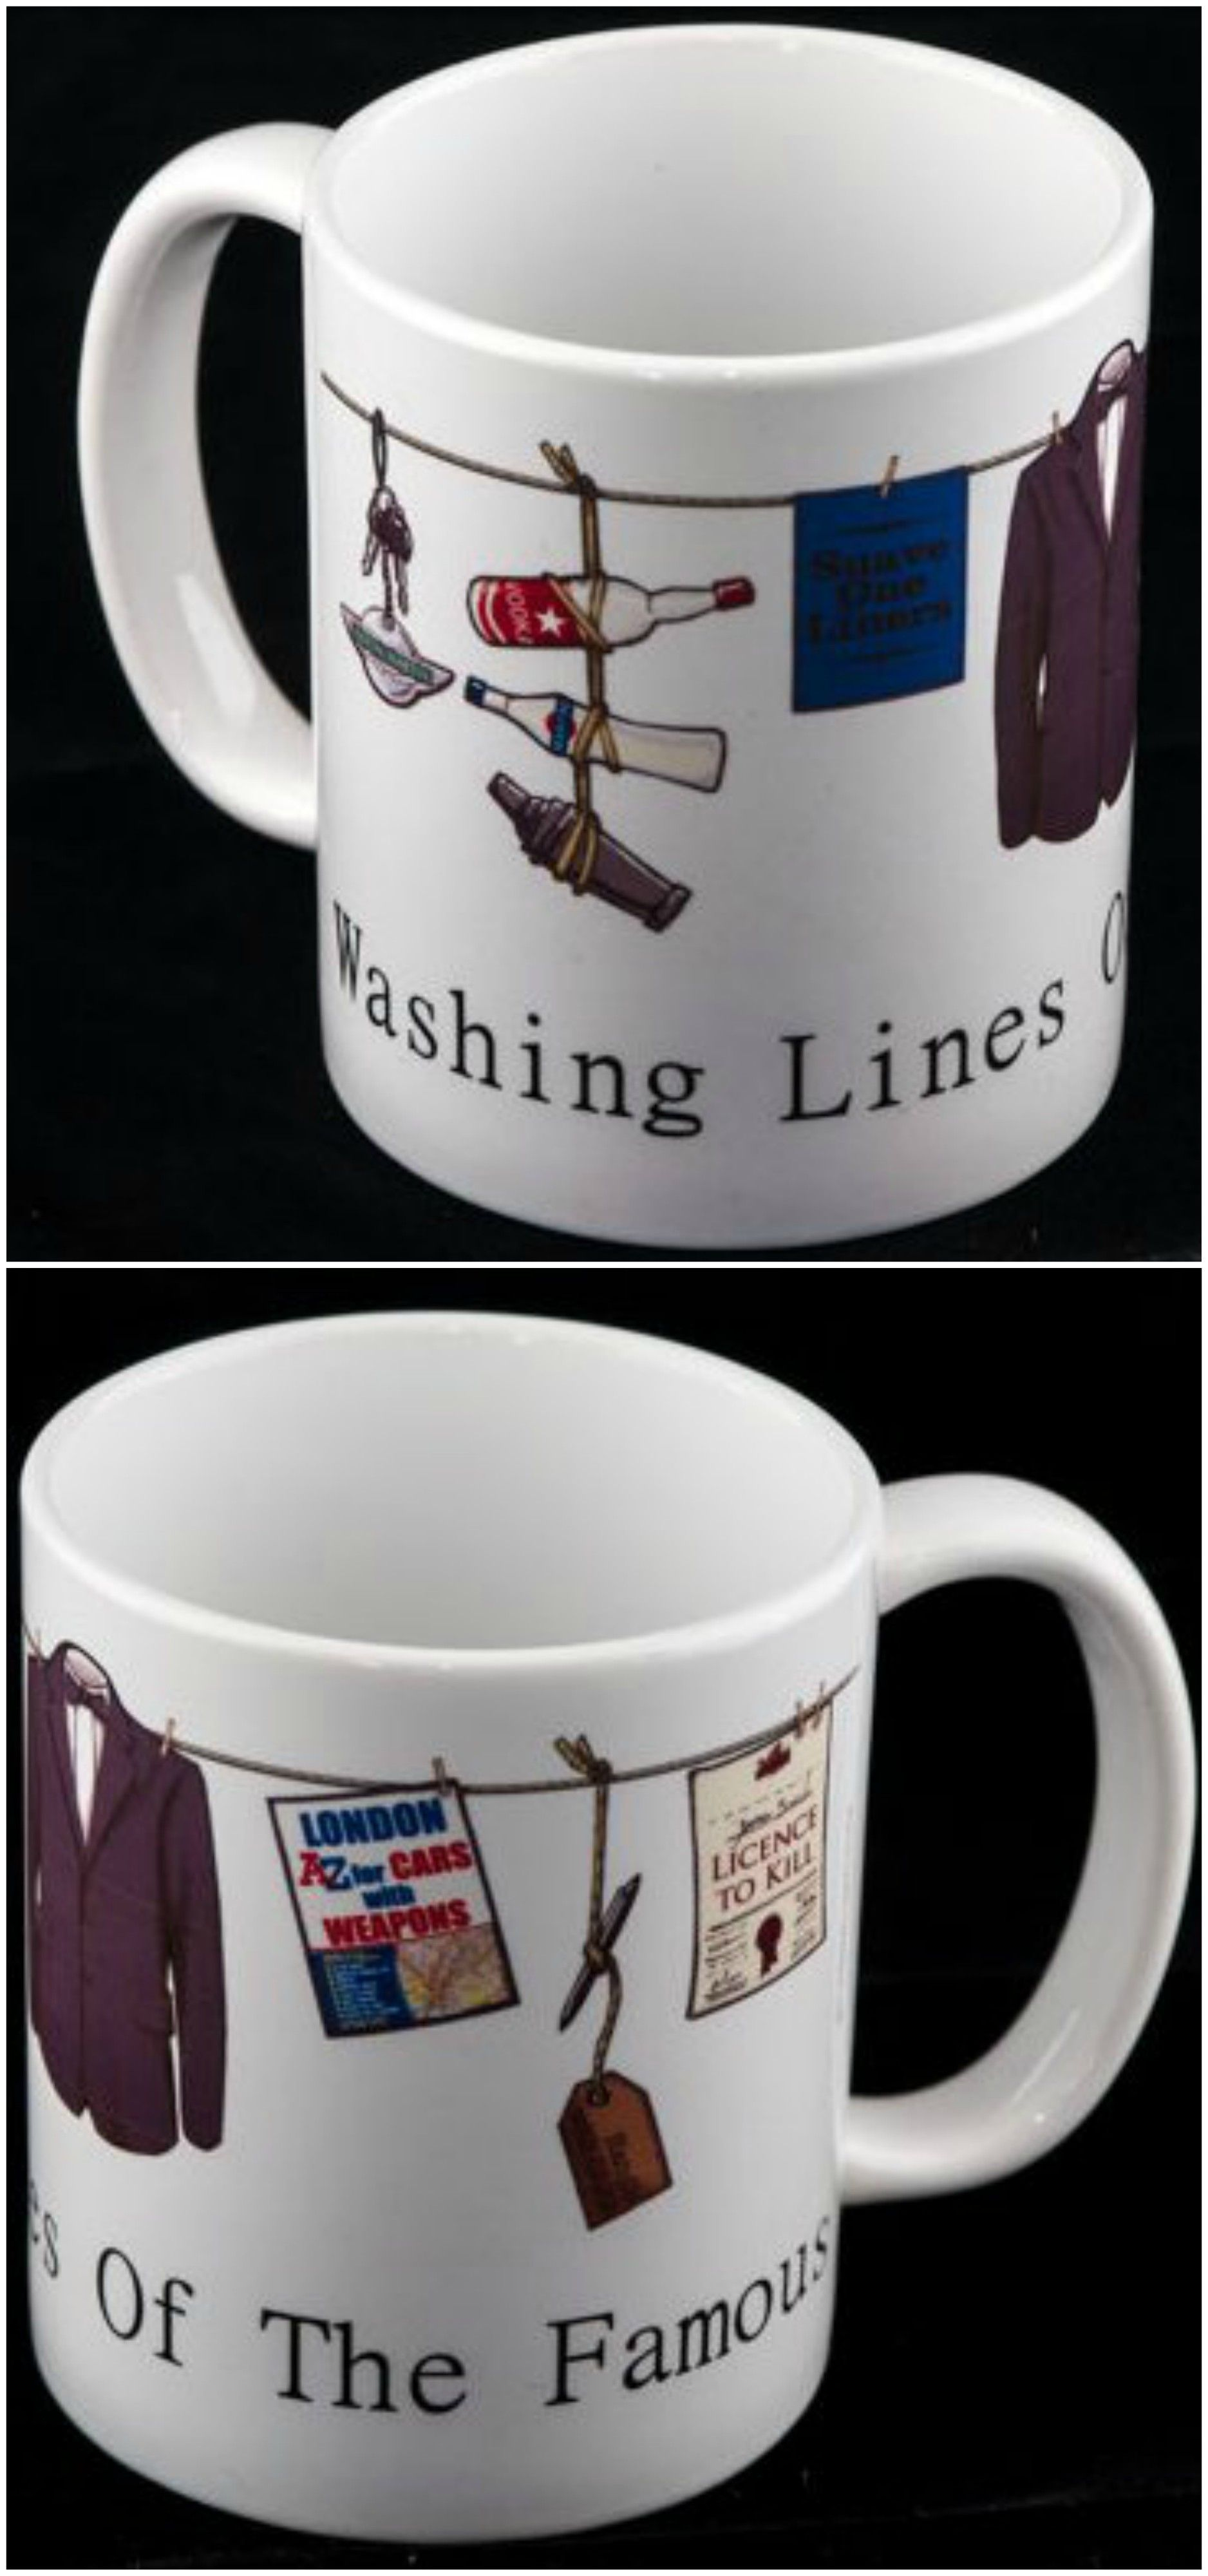 James Bond...Clothes Lines of the Rich & Famous coffee mug